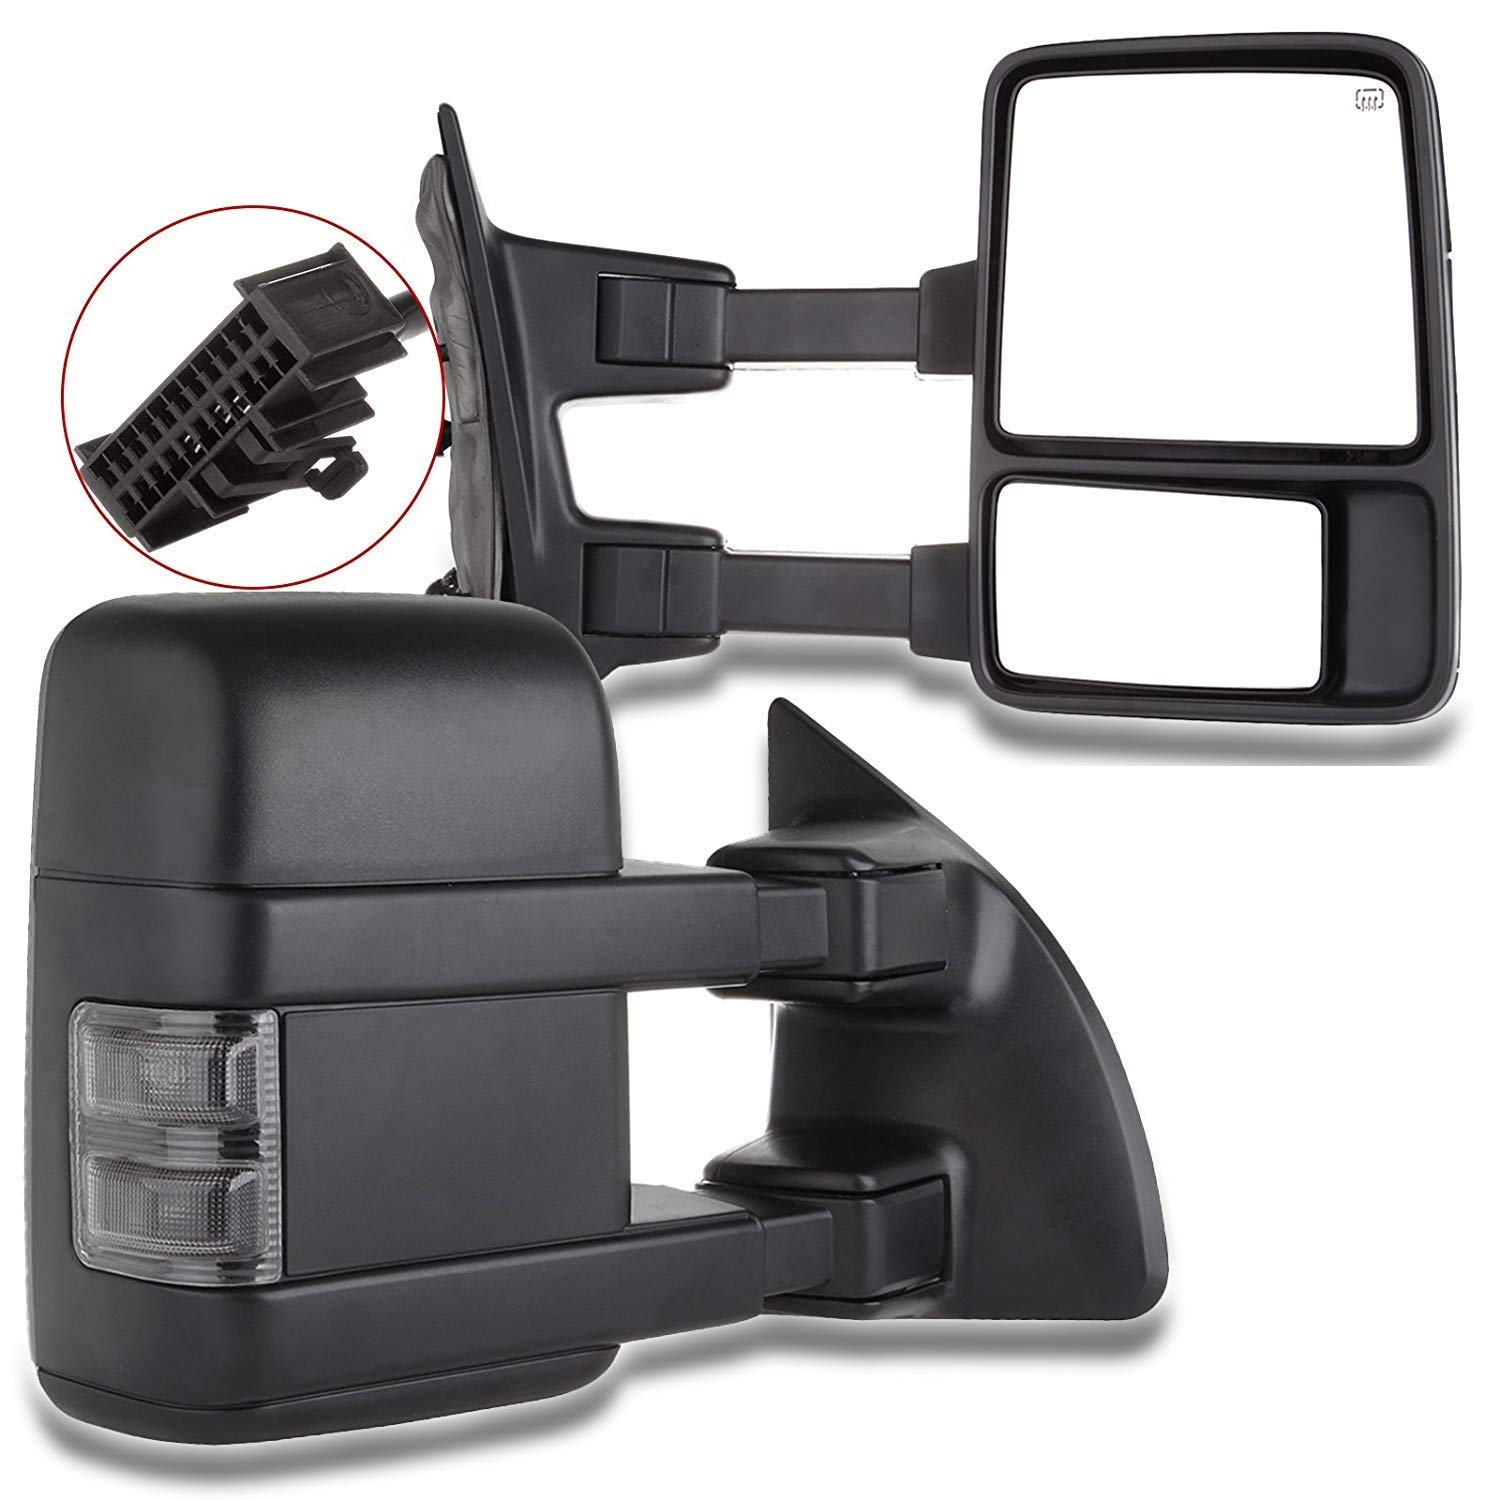 SCITOO Tow Mirrors fit 1999-2016 Ford F250 F350 F450 F550 Super Duty Pickup Manual LED Smoke Signals Lamps View Mirror Pair by SCITOO